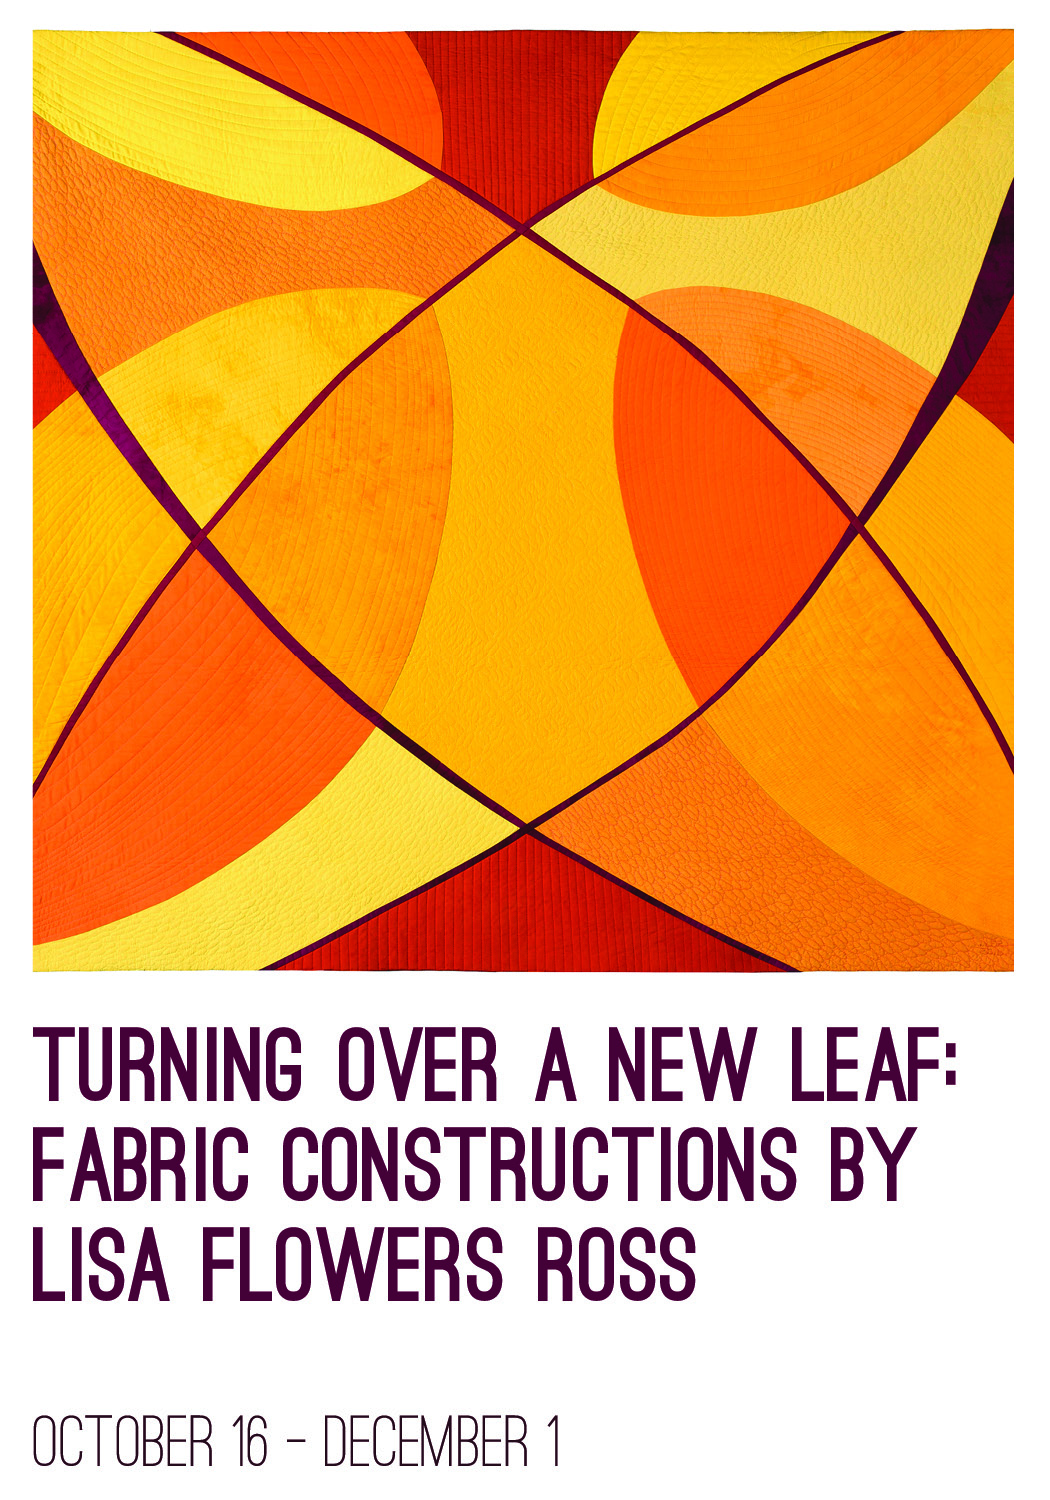 Abstract quilt with orange, yellow, and red shapes; Turning over a new leaf: Fabric constructions by Lisa Flowers Ross October 16 - December 1